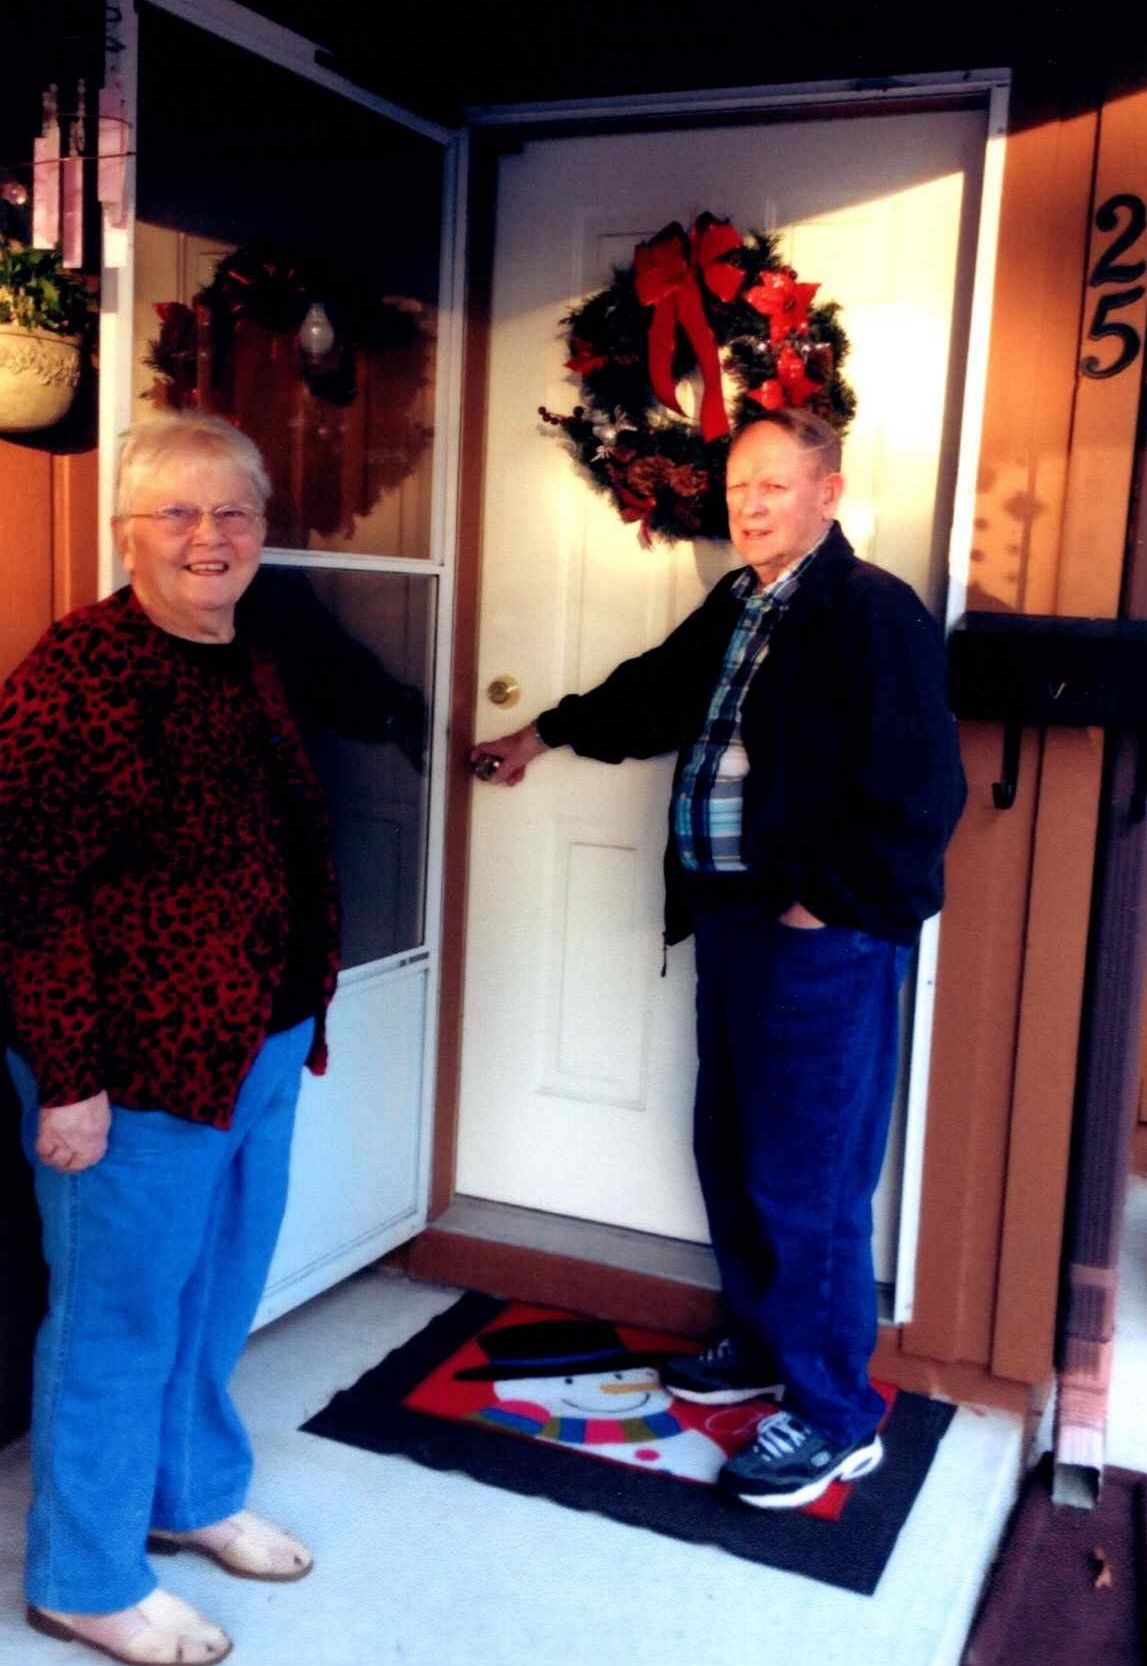 Elizabeth and Neil McColl at Christmas